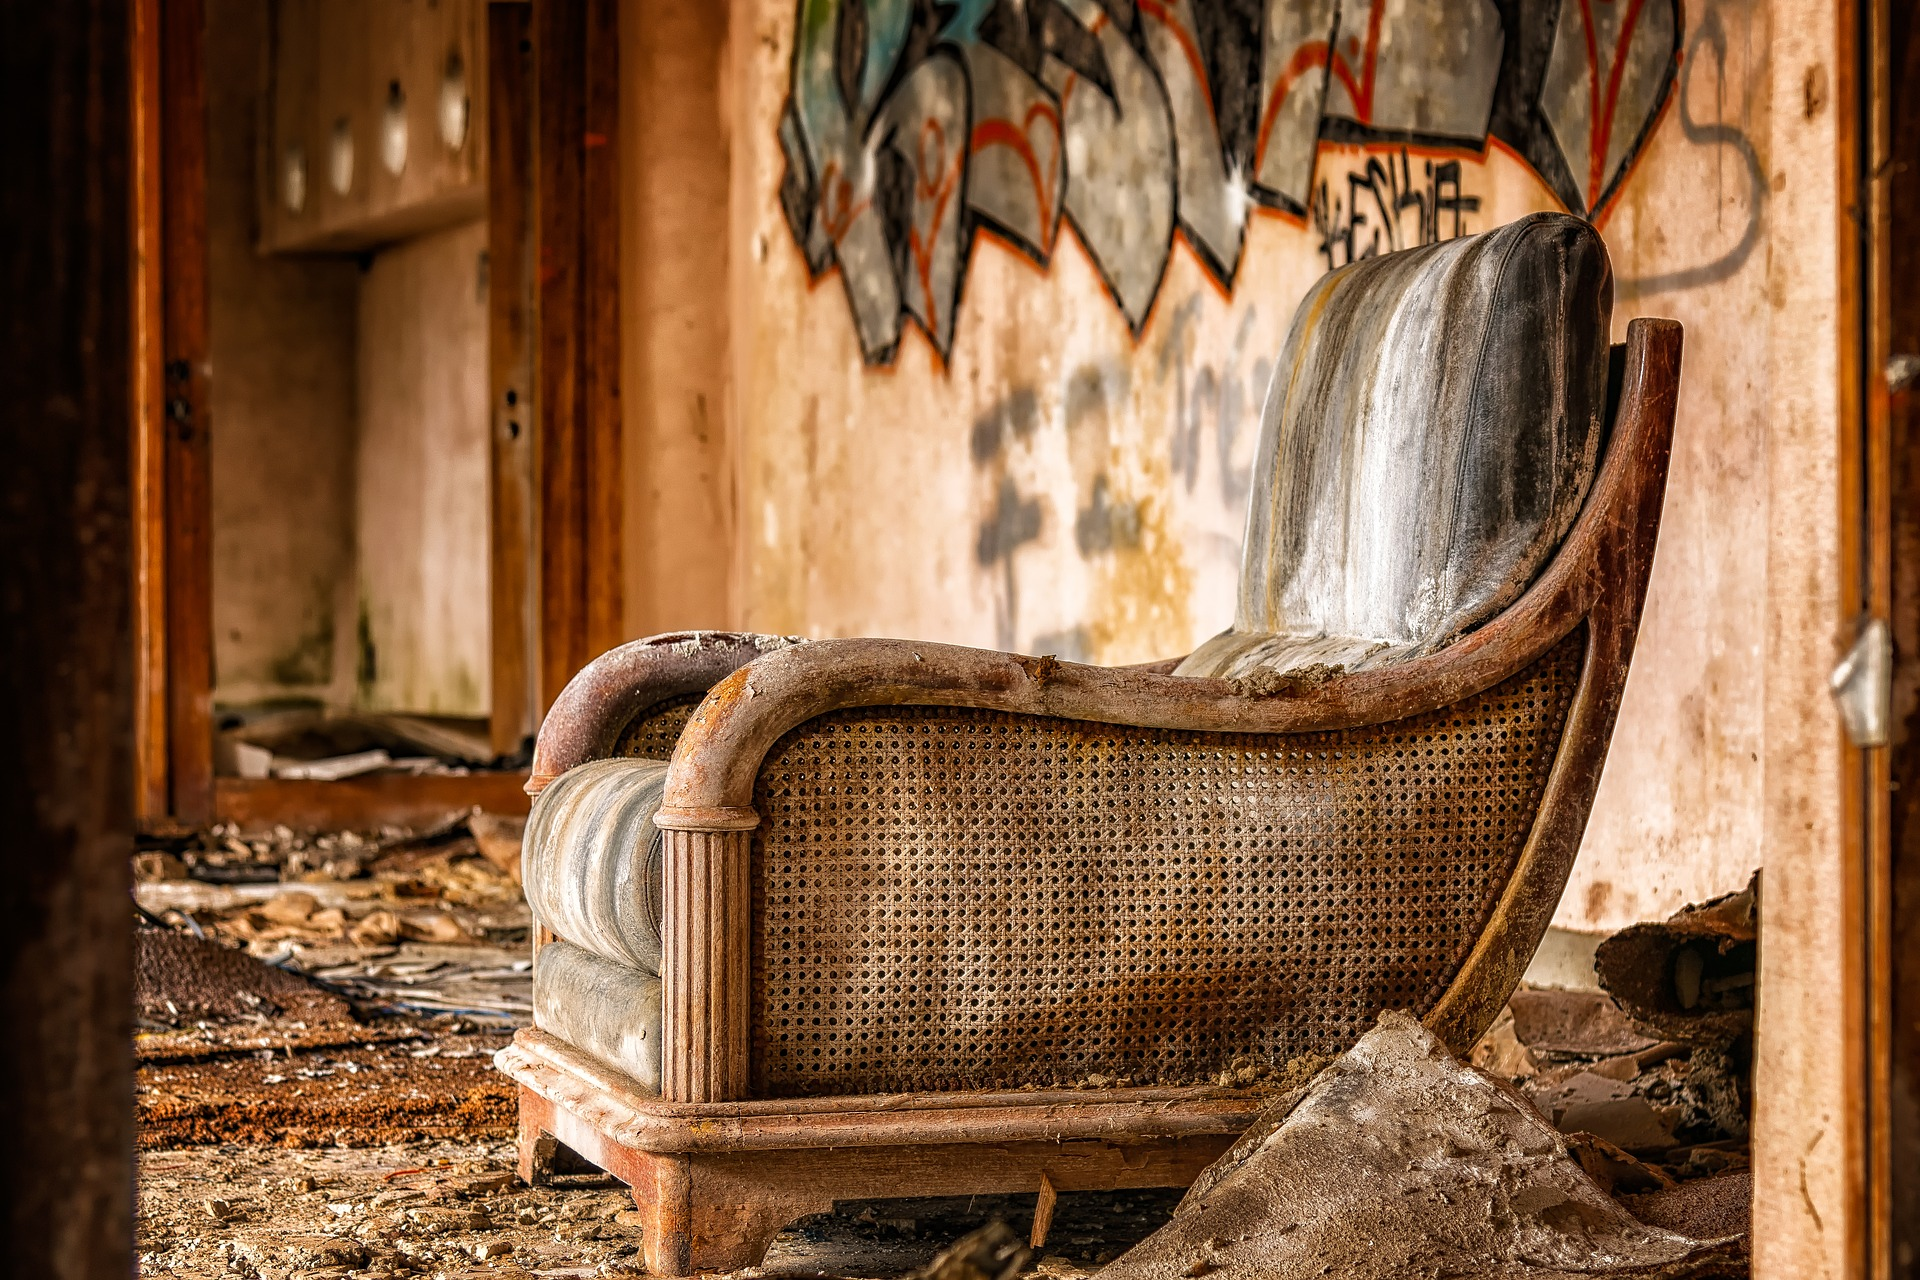 What Happens to Old Hotel Furniture? + Other Hotel Furniture FAQs